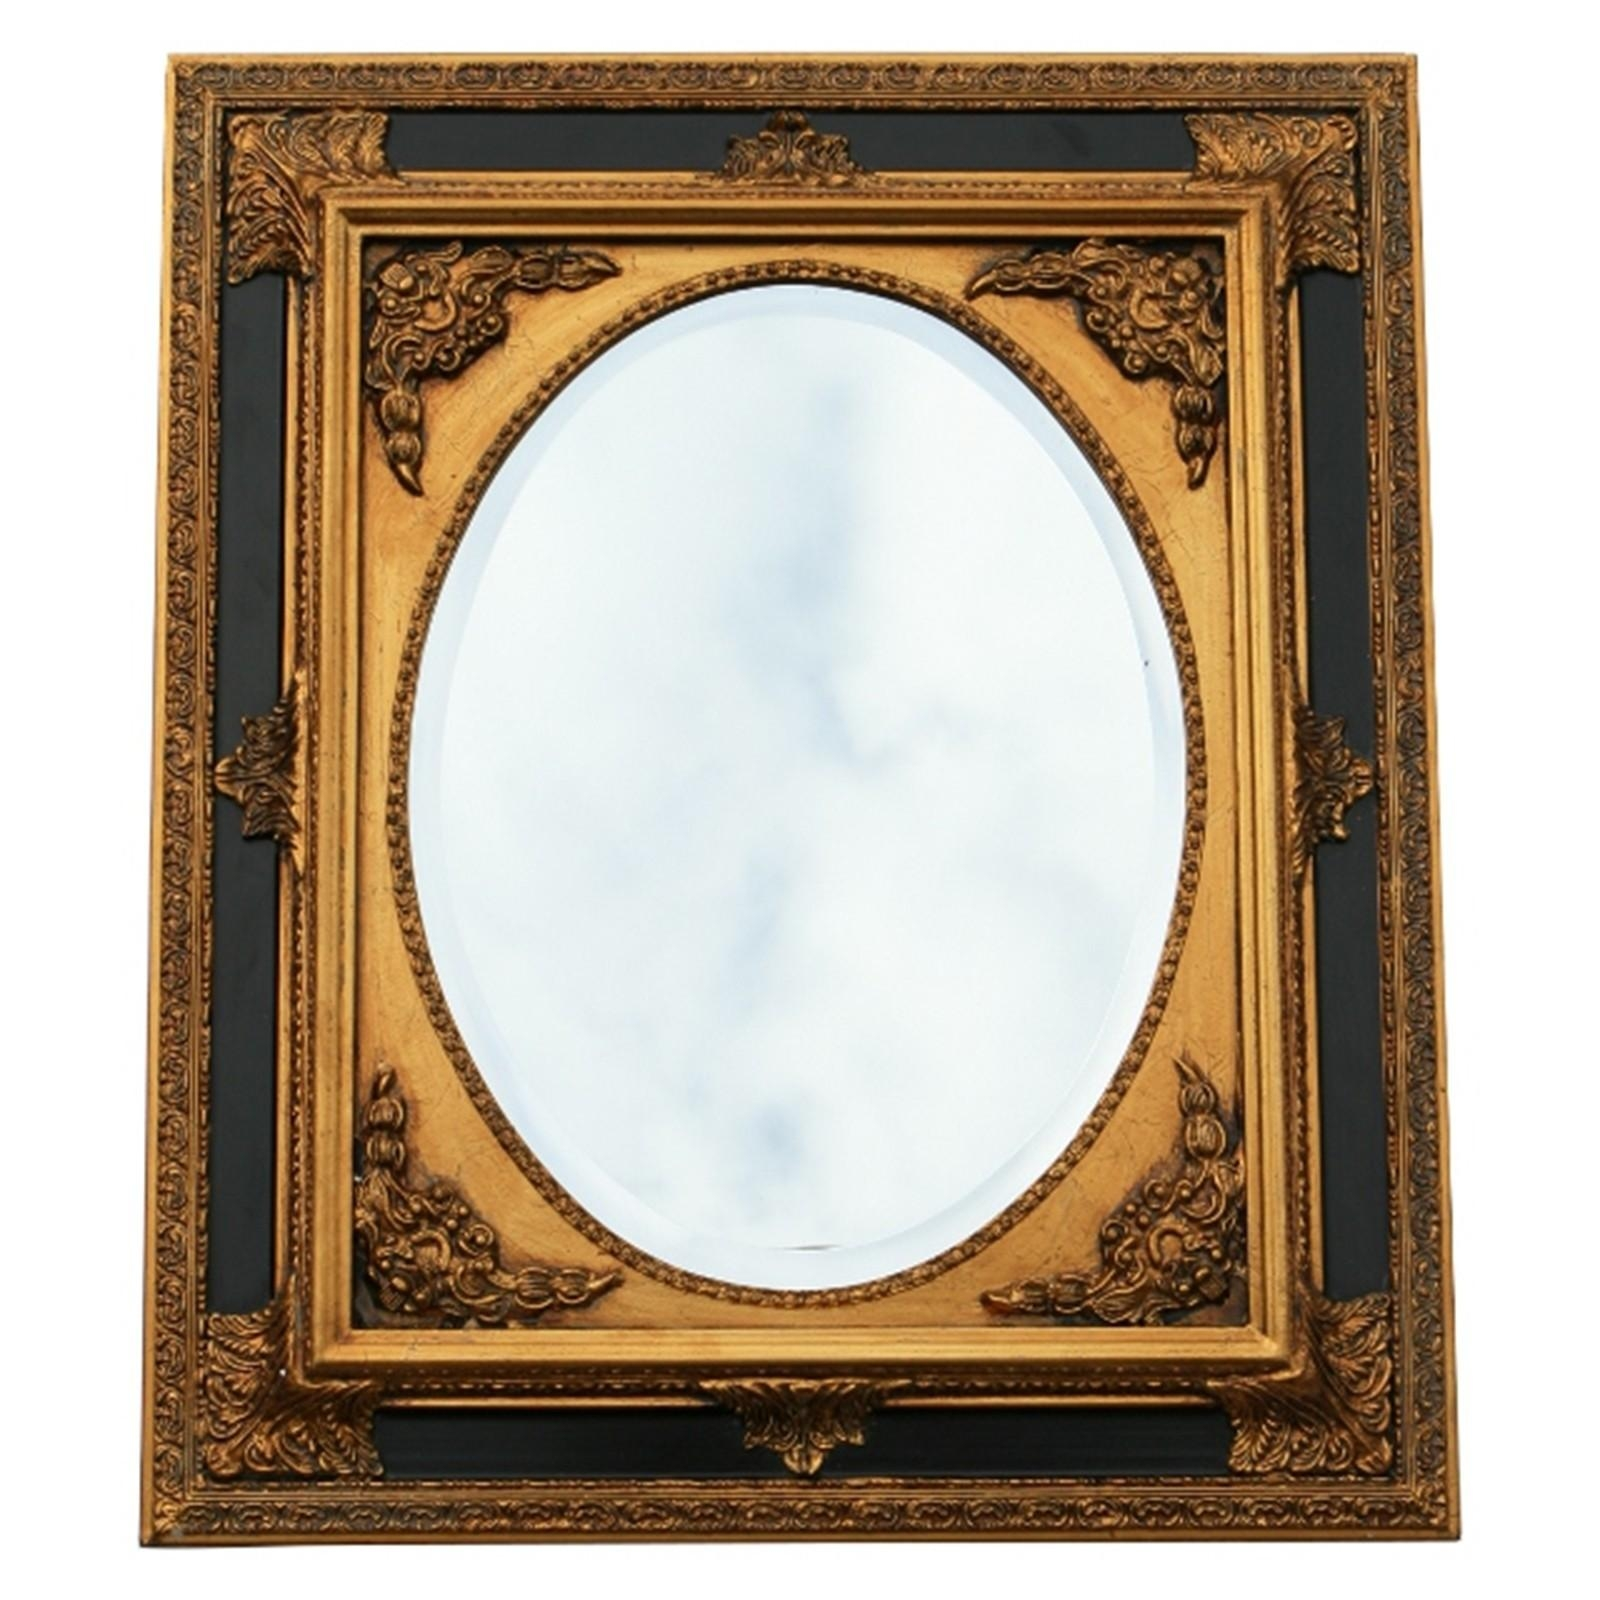 Baroque Wall Mirror Oval Ornate Frame 50X60/ 20X24 Inches Antique In Gold Baroque Mirror (Image 11 of 20)